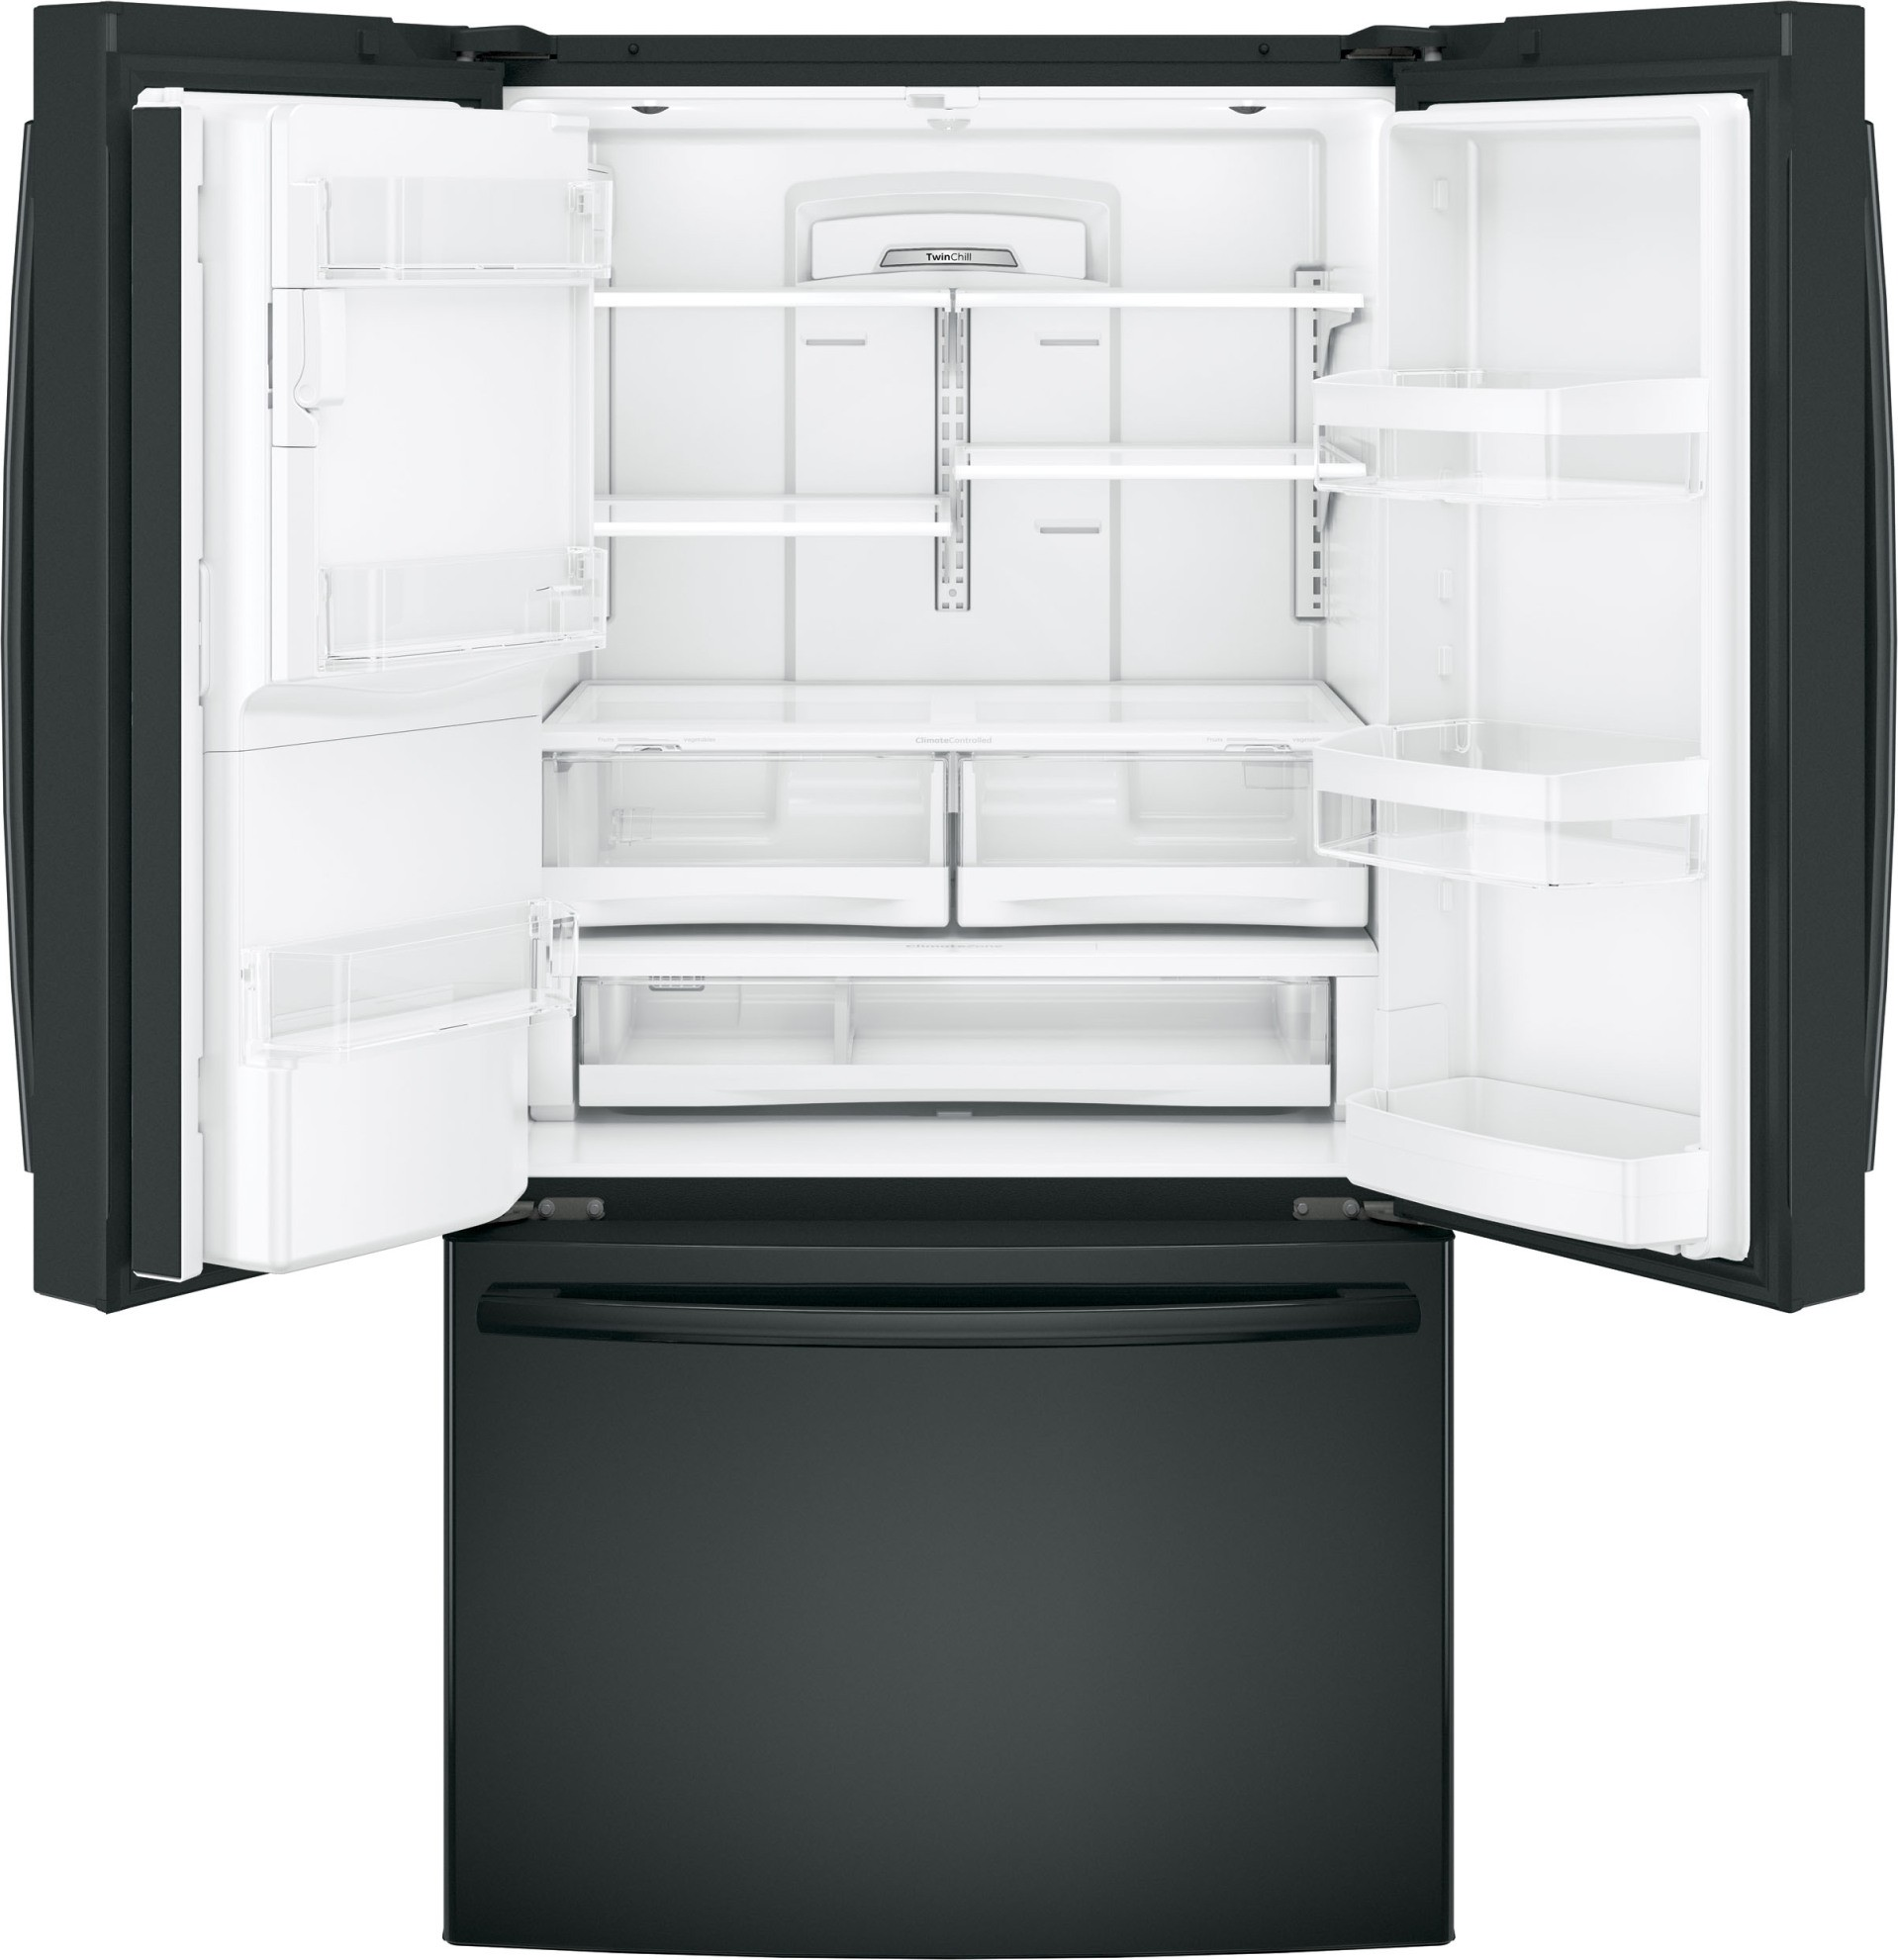 Gfe28ggkbb Ge 36 Quot 27 8 Cu Ft French Door Refrigerator